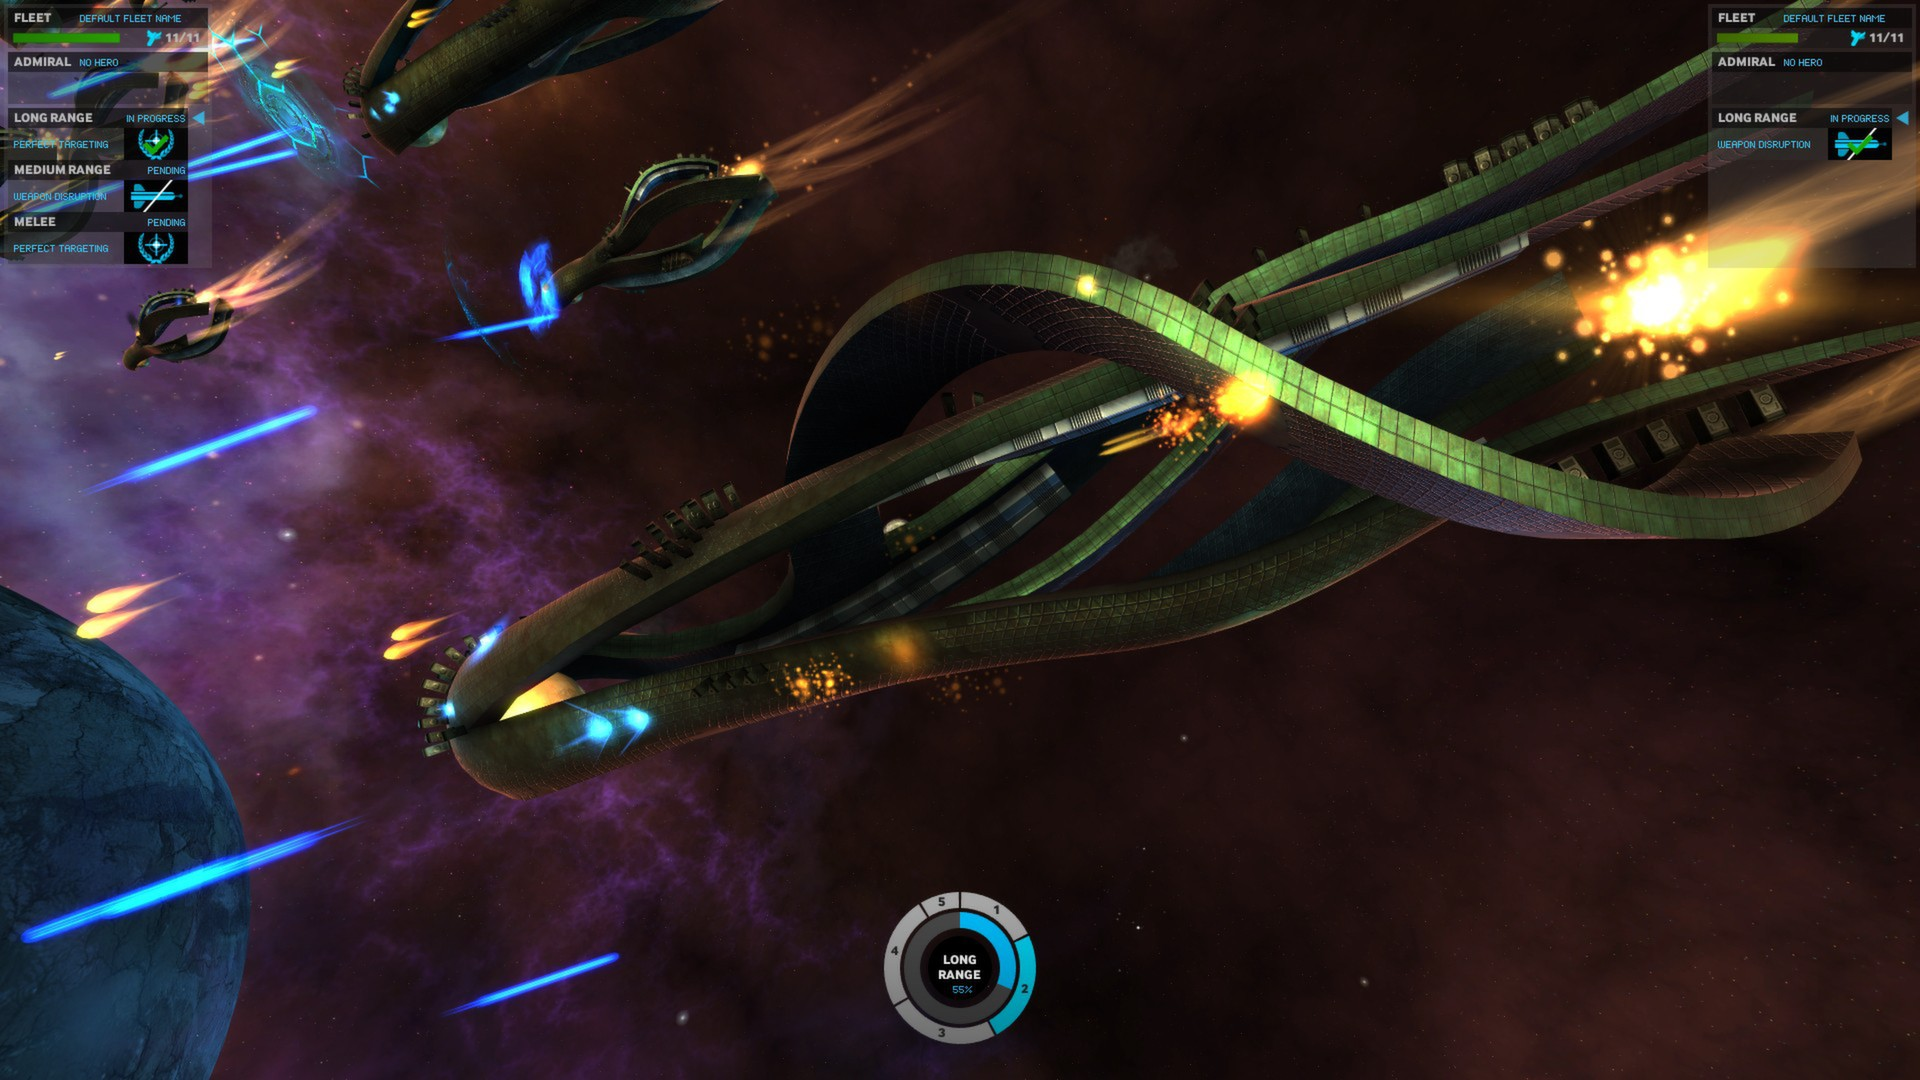 Want Endless Space? Go get it, it's free